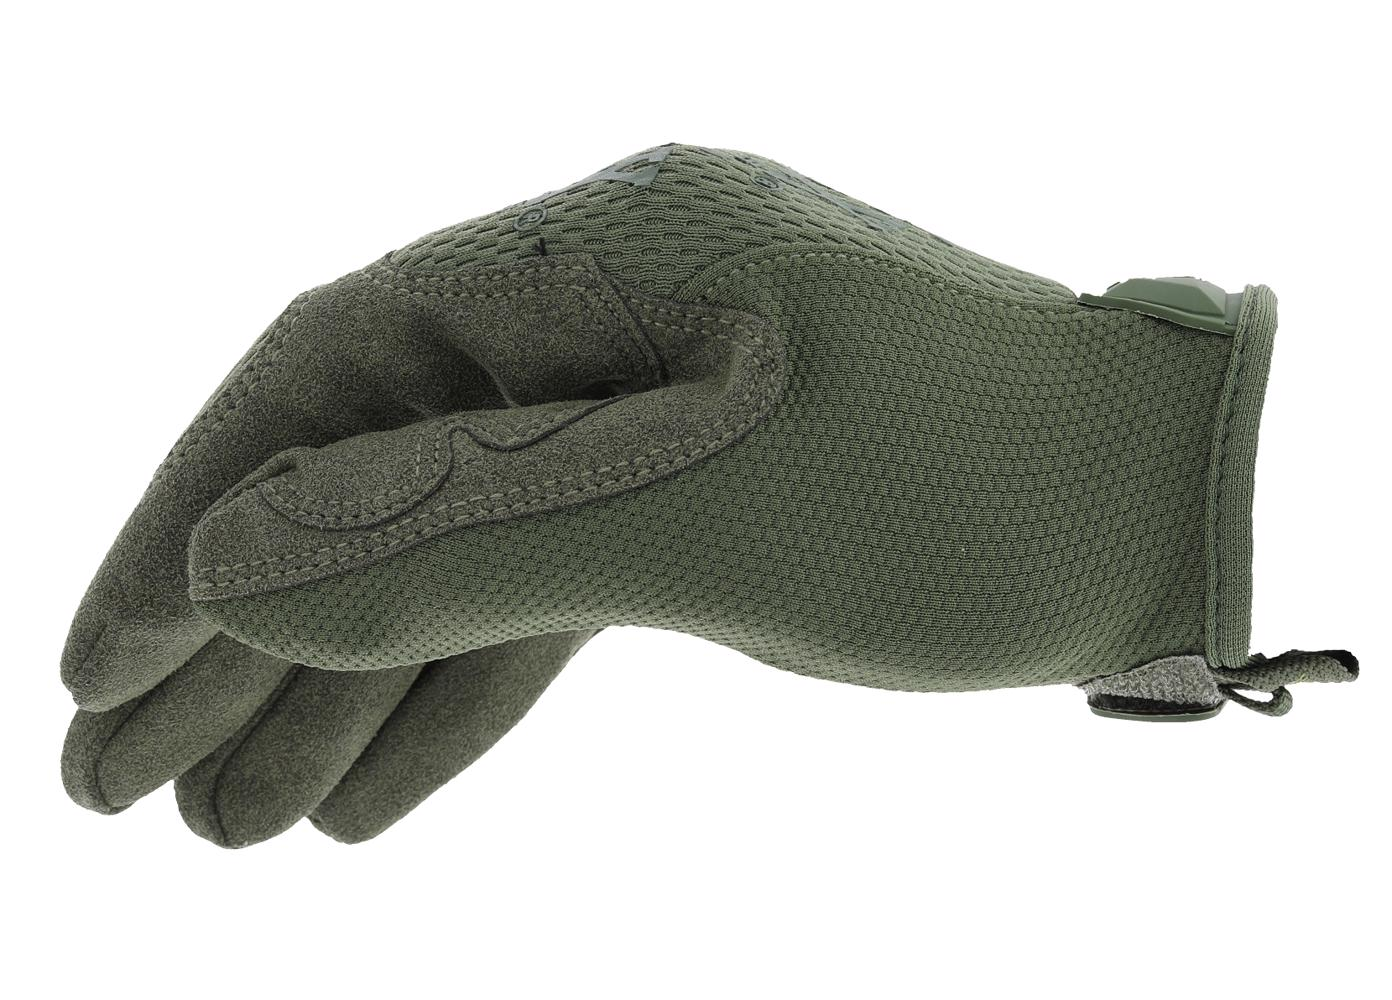 Rukavice Original olive drab, Mechanix